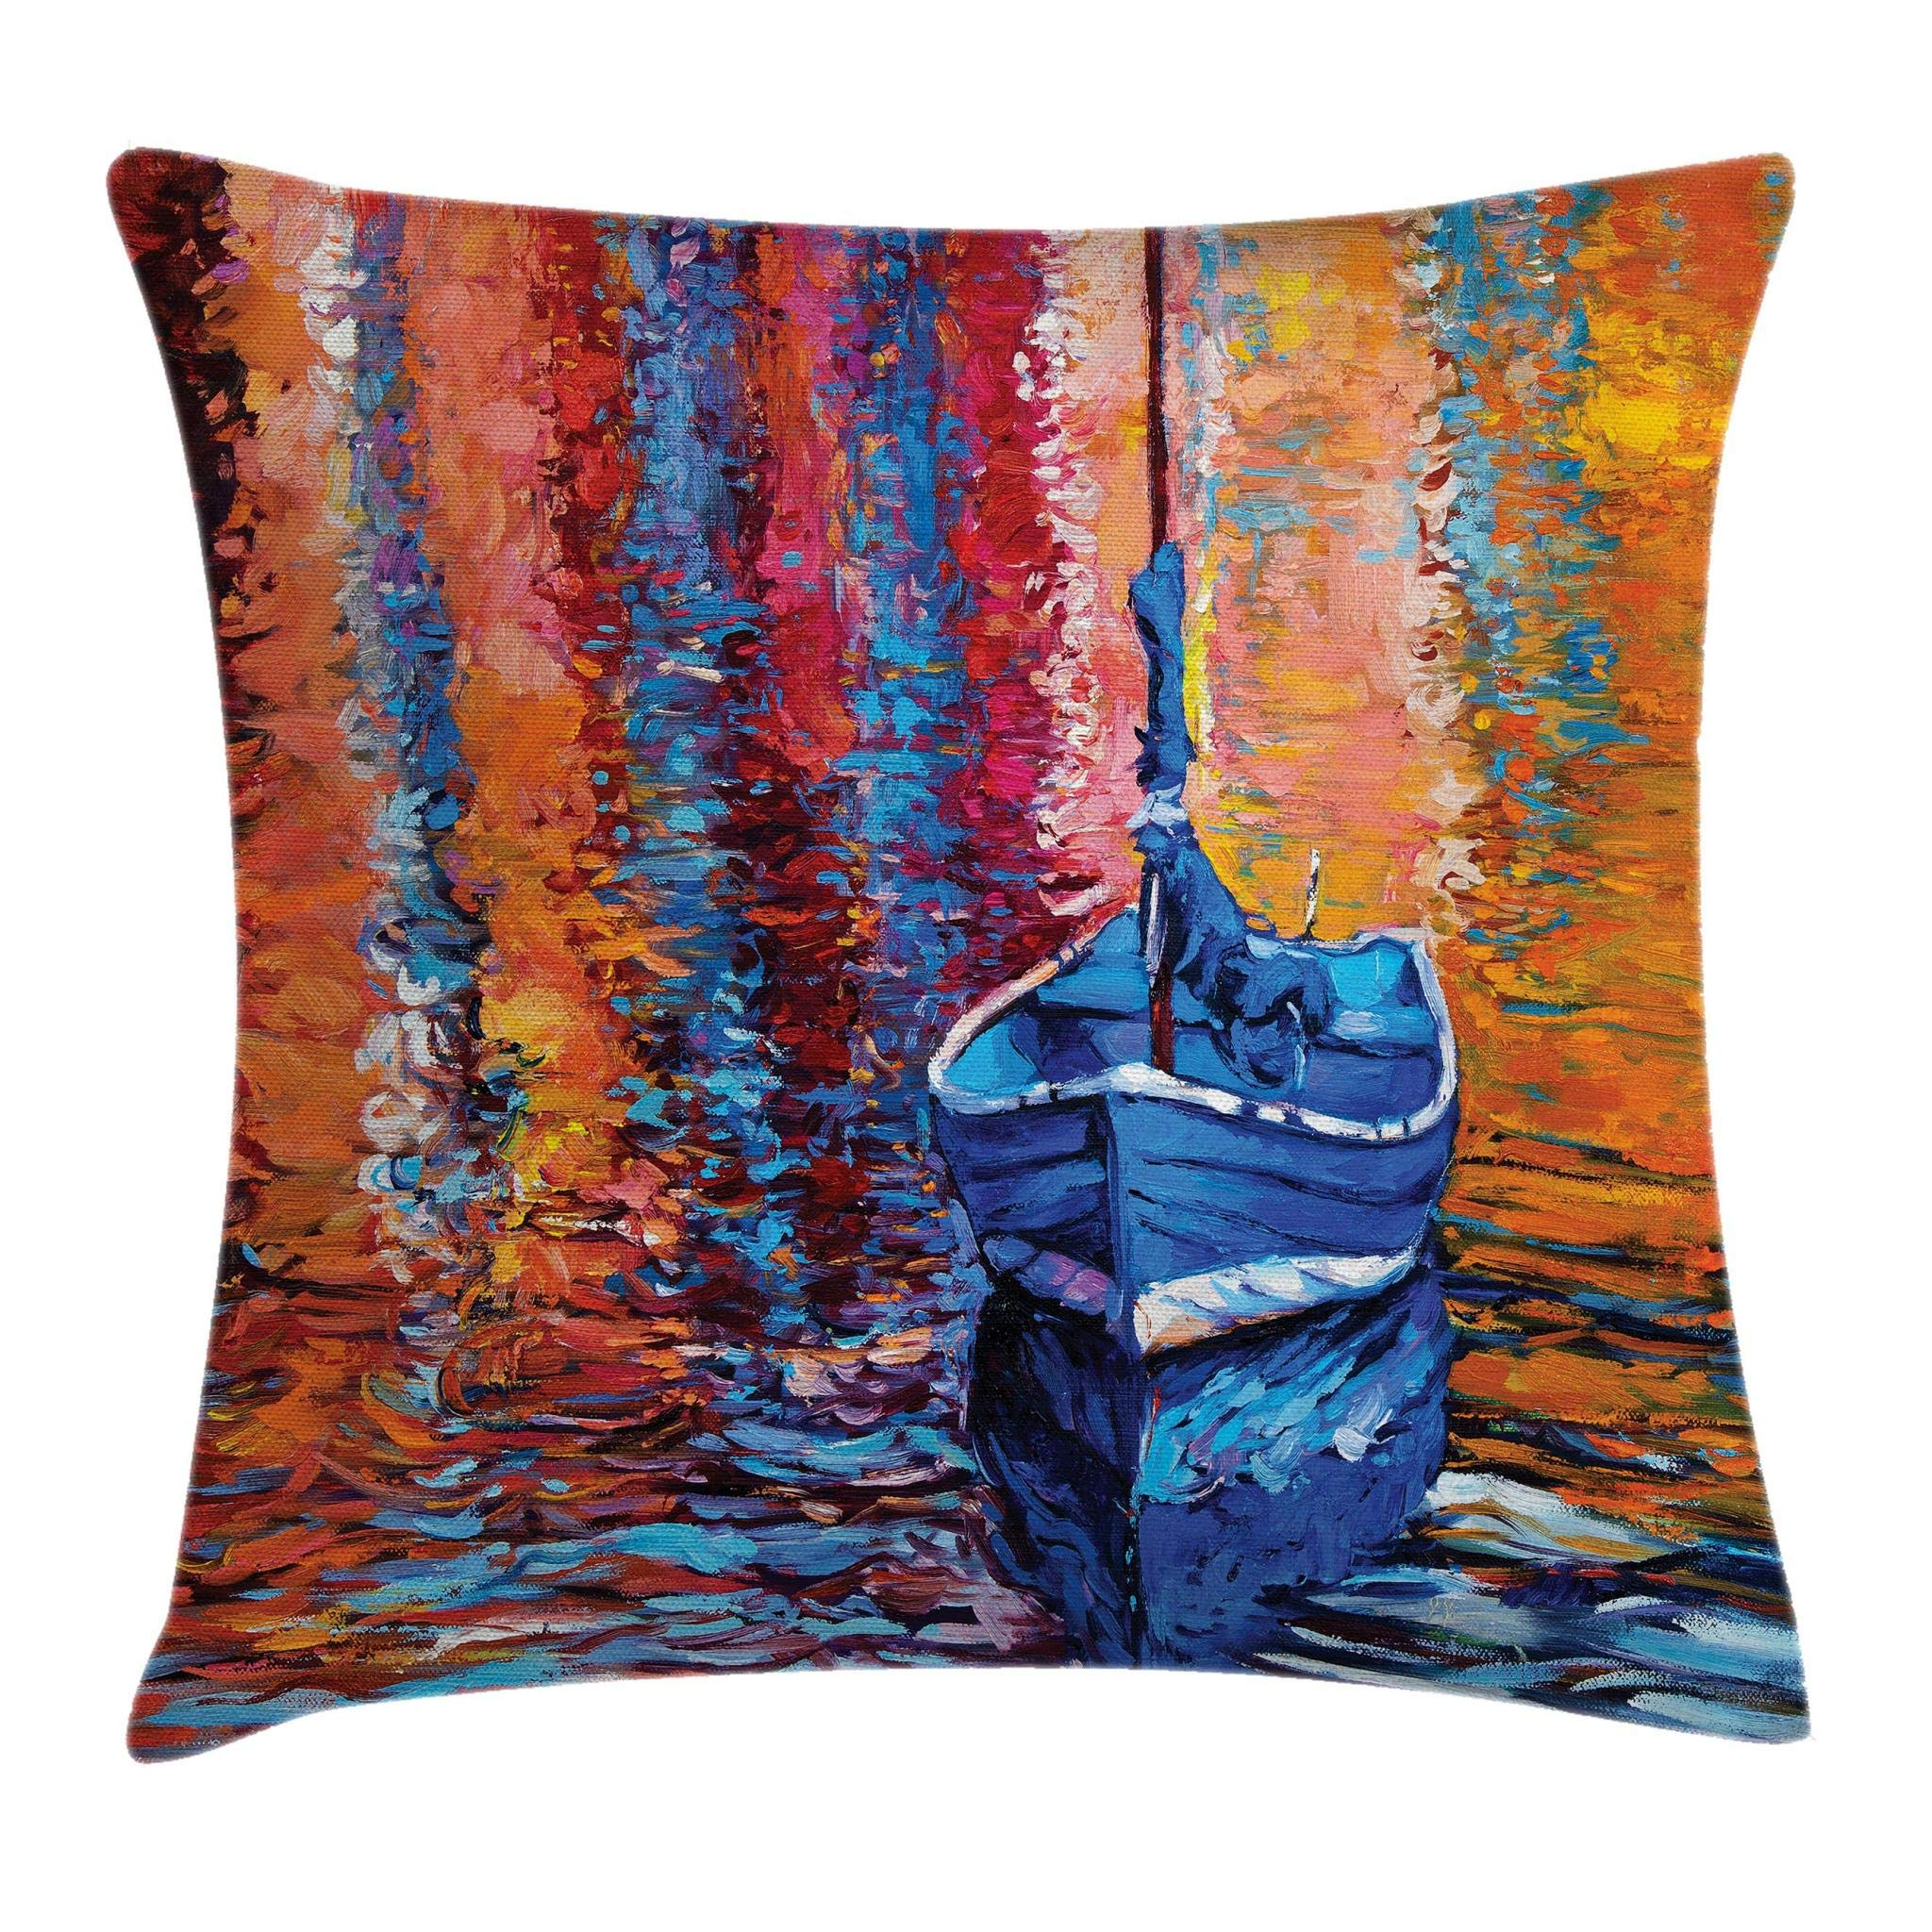 Ambesonne Country Throw Pillow Cushion Cover, Pastel Color Paint Fishing Sail Boat in The Sea Dark Fairy Image Dramatic Art Work, Decorative Square Accent Pillow Case, 16'' X 16'', Coral by Ambesonne